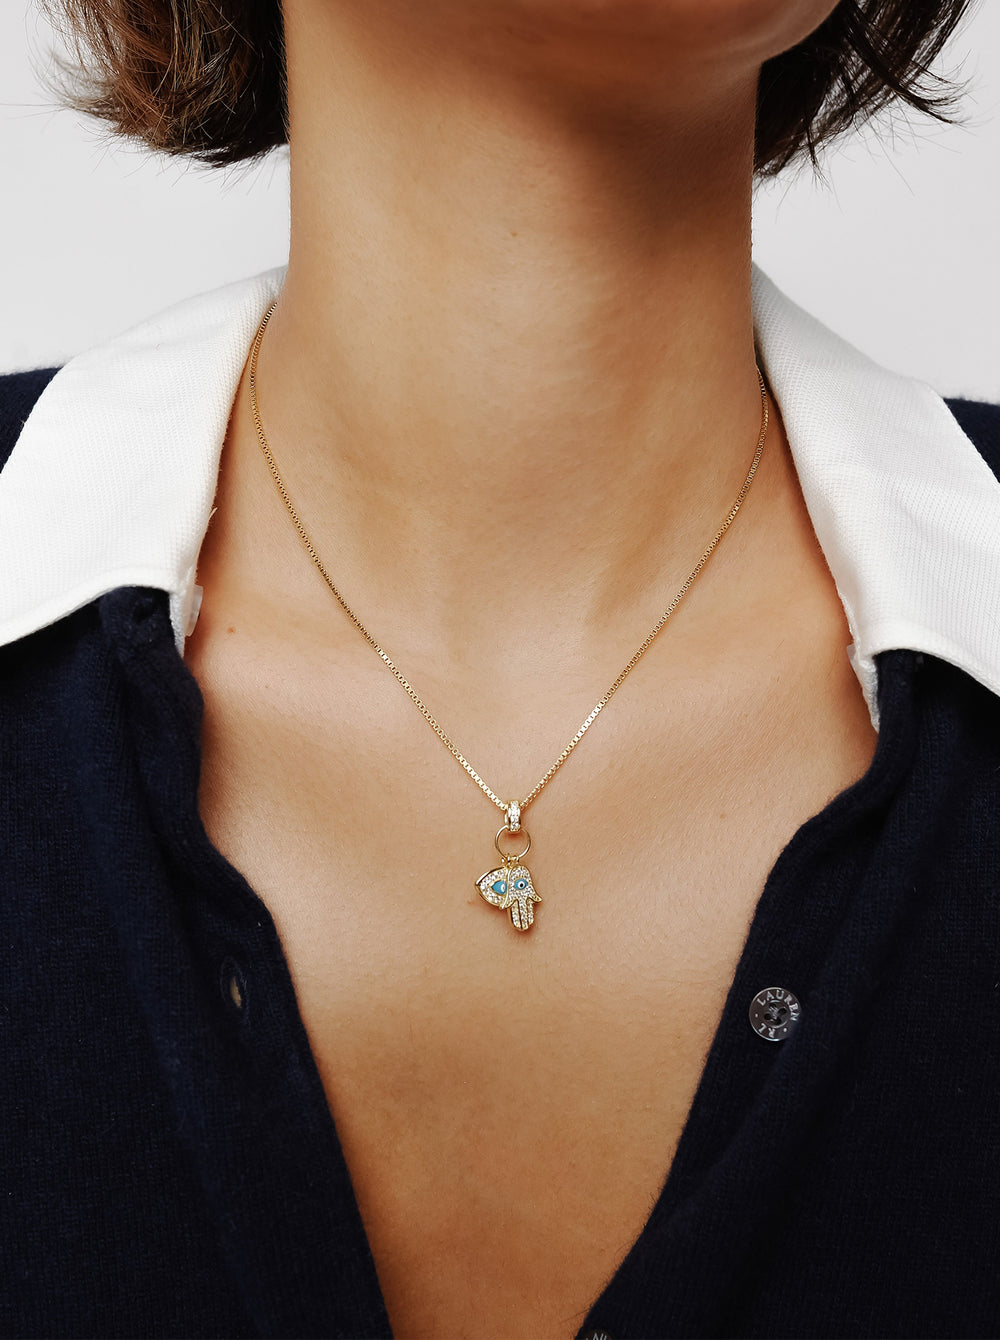 THE EVIL EYE HAMSA DOUBLE CHARM NECKLACE